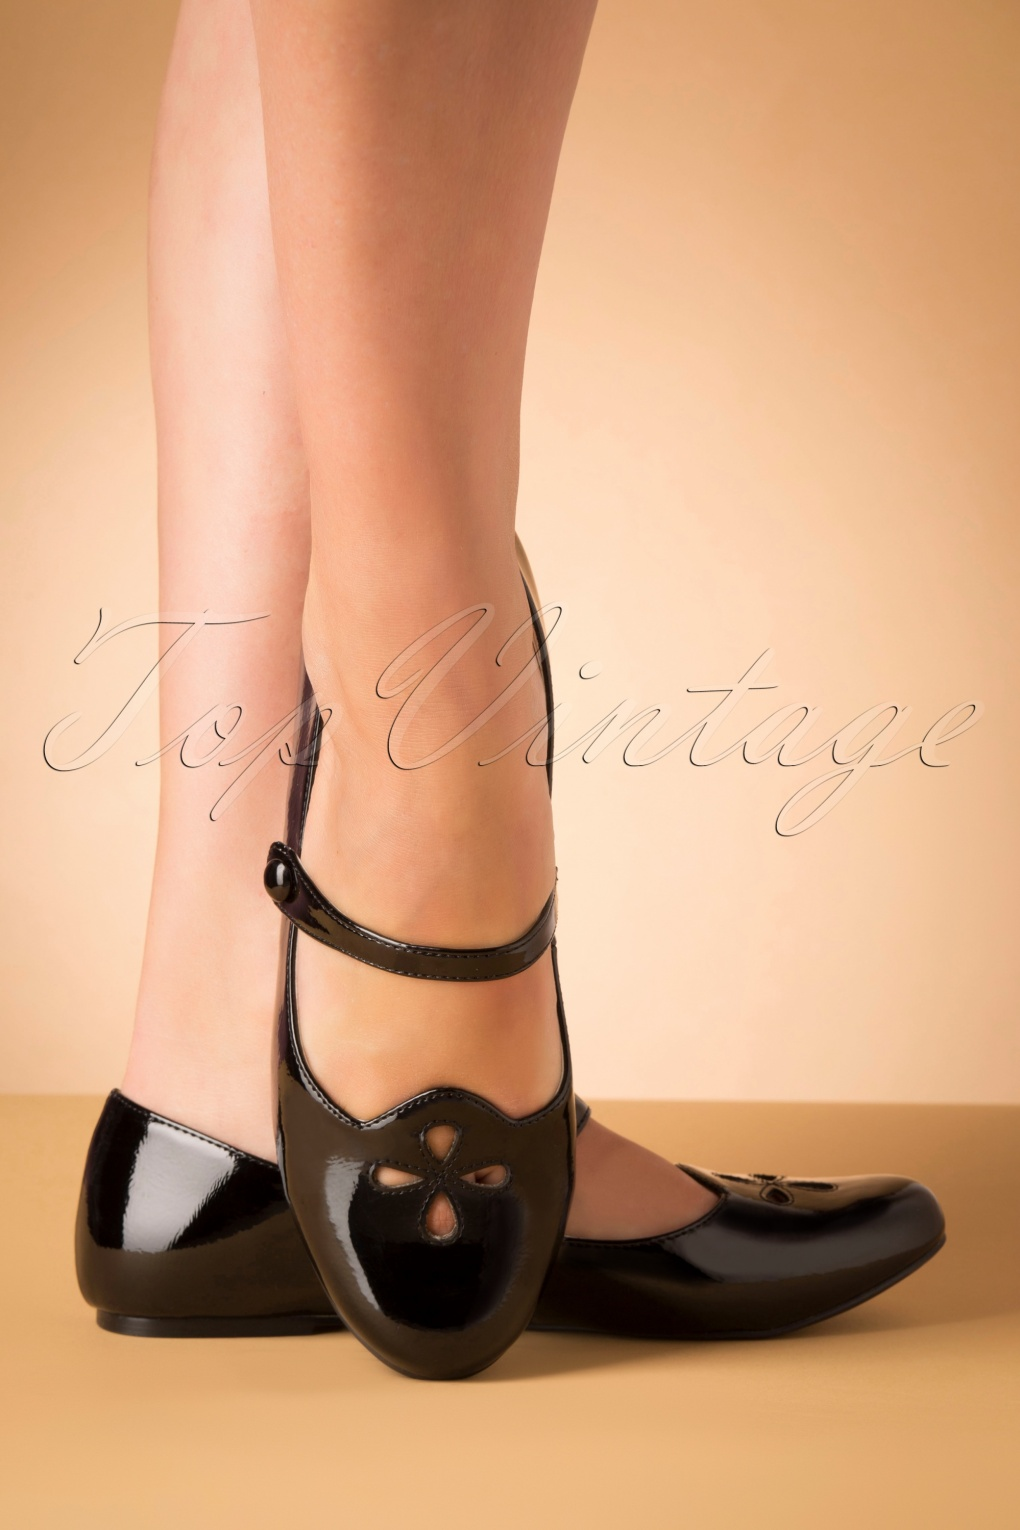 Retro Vintage Flats and Low Heel Shoes 60s Elizabeth Mary Jane Patent Flats in Black £57.90 AT vintagedancer.com